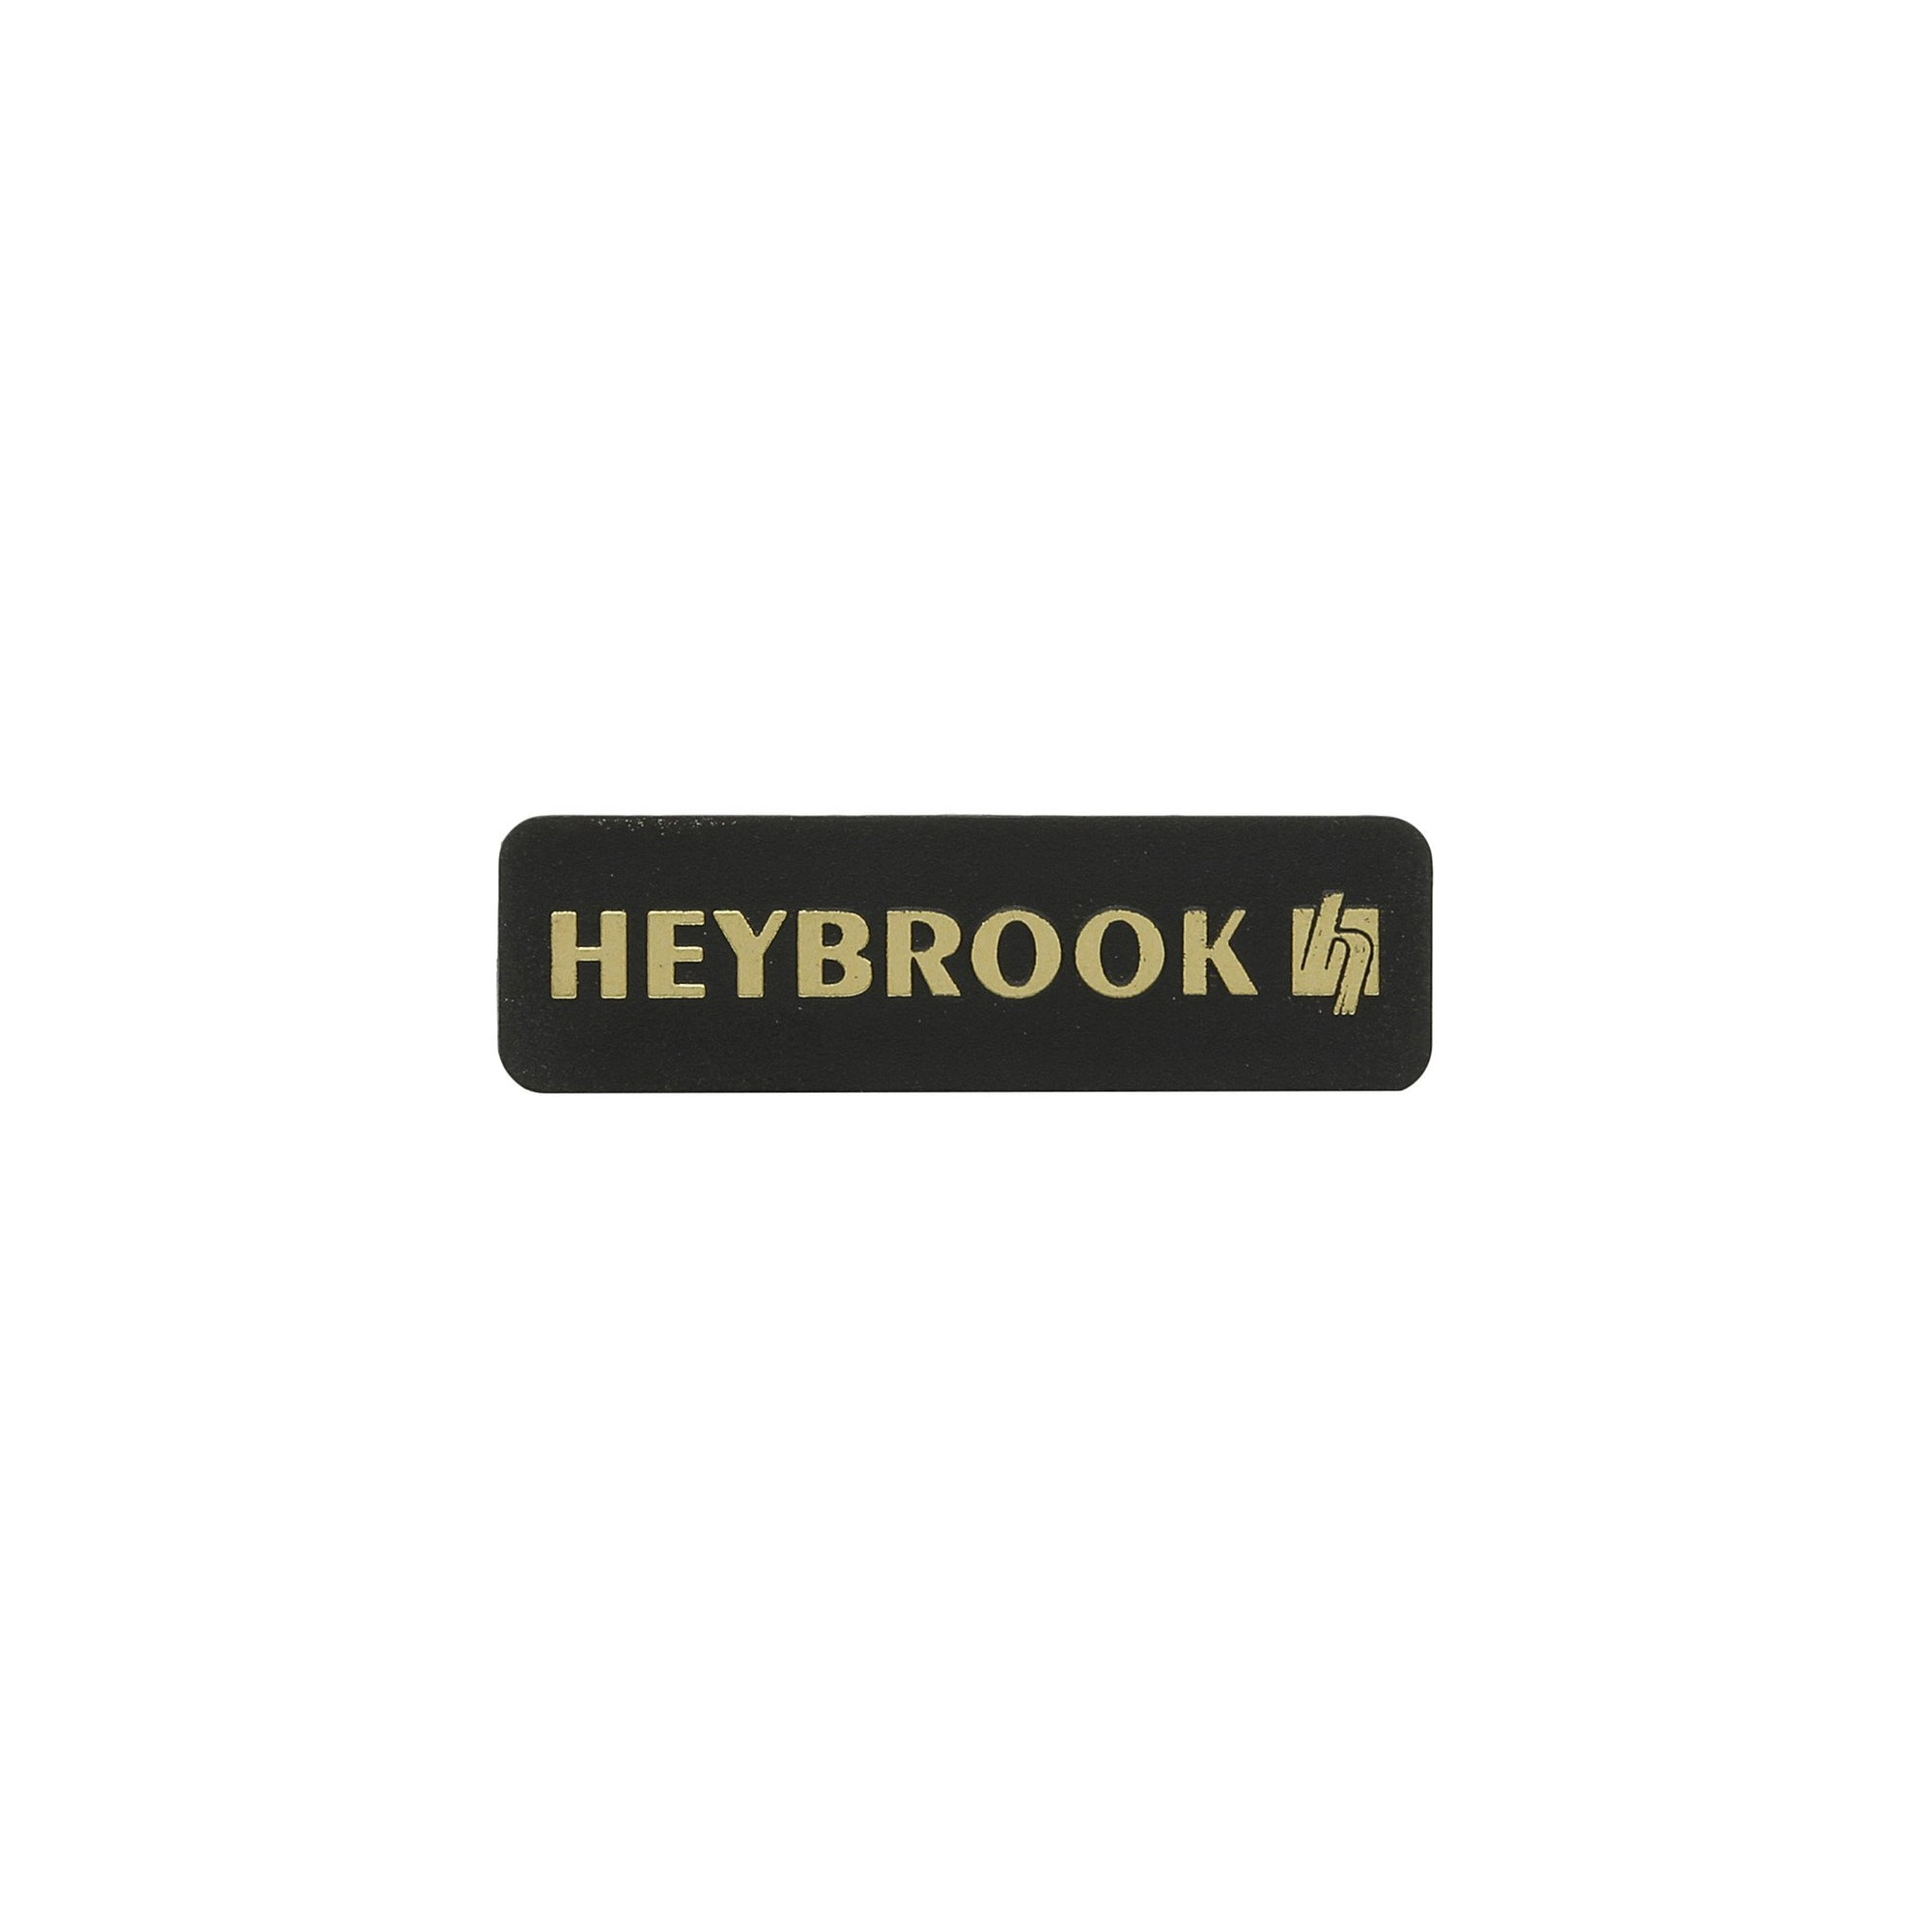 Heybrook Speaker Logo Badge GENUINE - Willys-Hifi Ltd